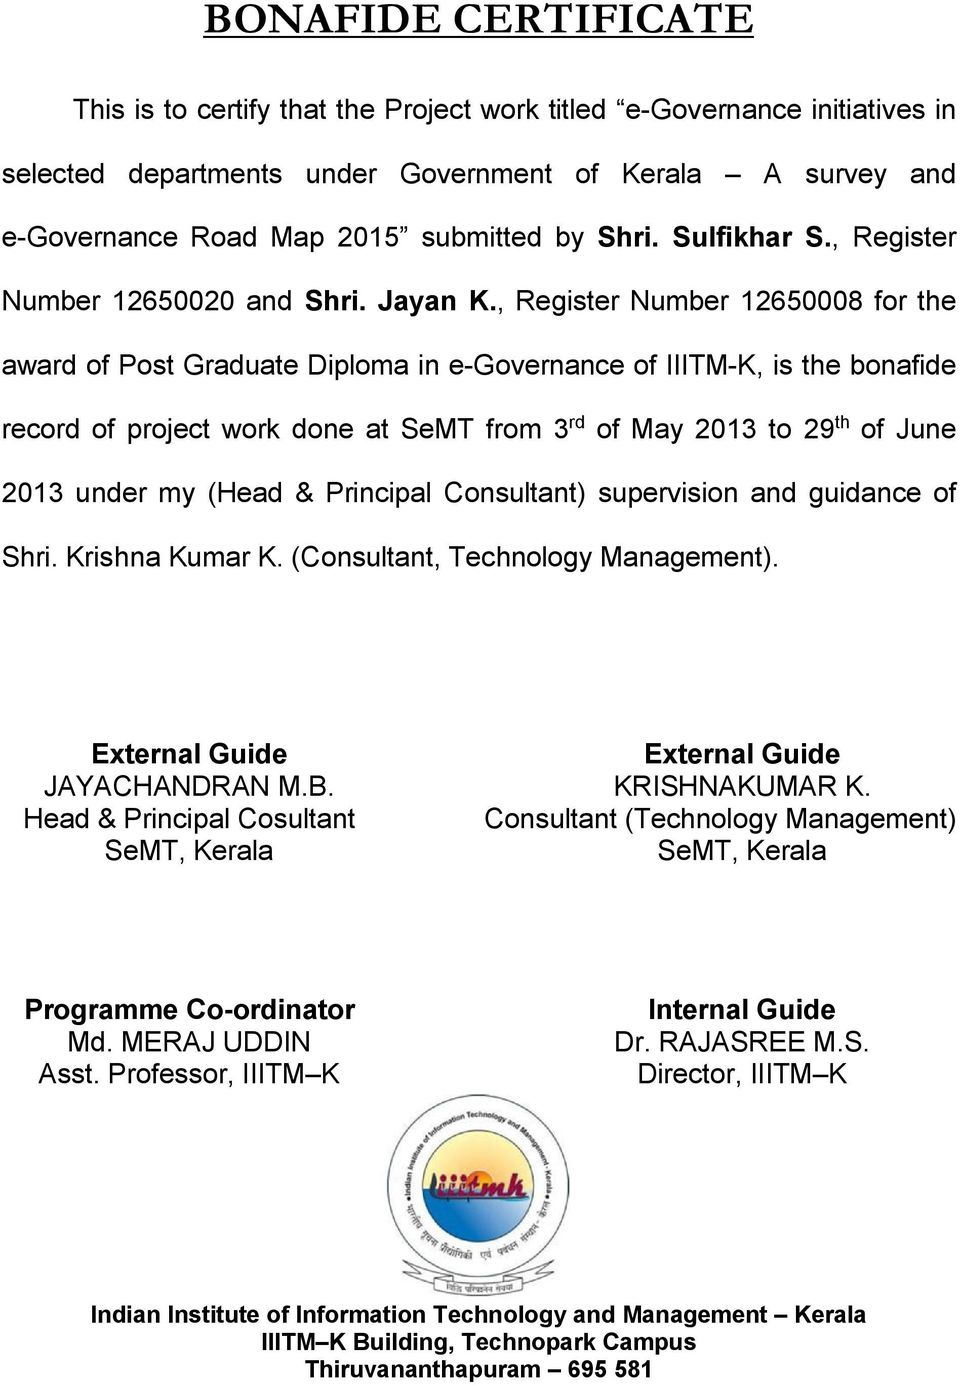 , Register Number 12650008 for the award of Post Graduate Diploma in e-governance of IIITM-K, is the bonafide record of project work done at SeMT from 3 rd of May 2013 to 29 th of June 2013 under my